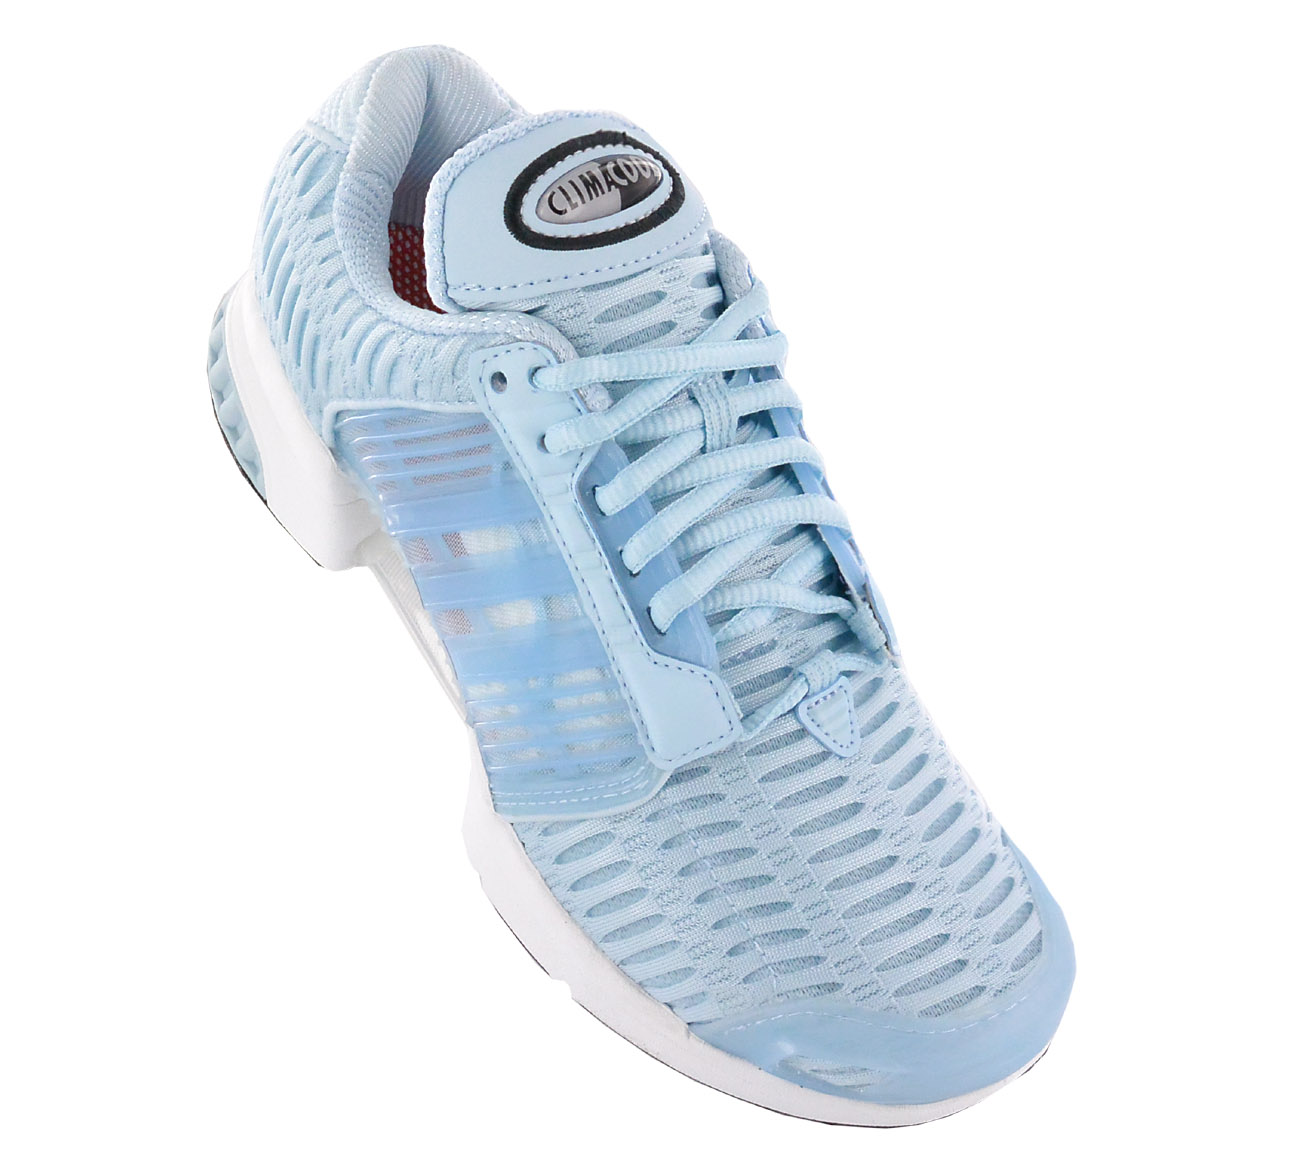 adidas originals climacool 1 trainers in blue ba8580 nz